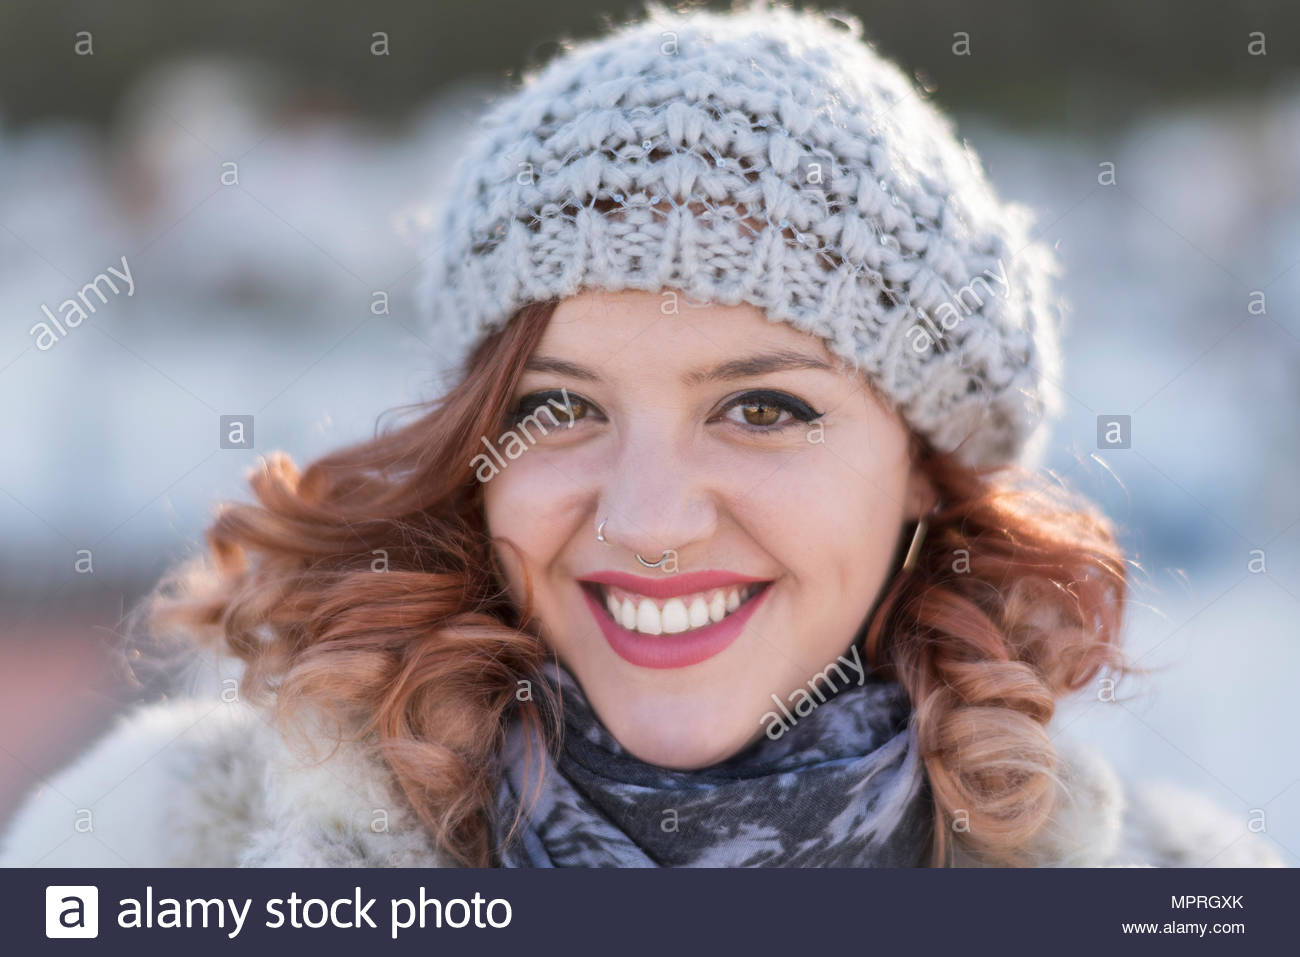 Portrait of laughing young woman with curly hair wearing wool cap and nose piercing - Stock Image